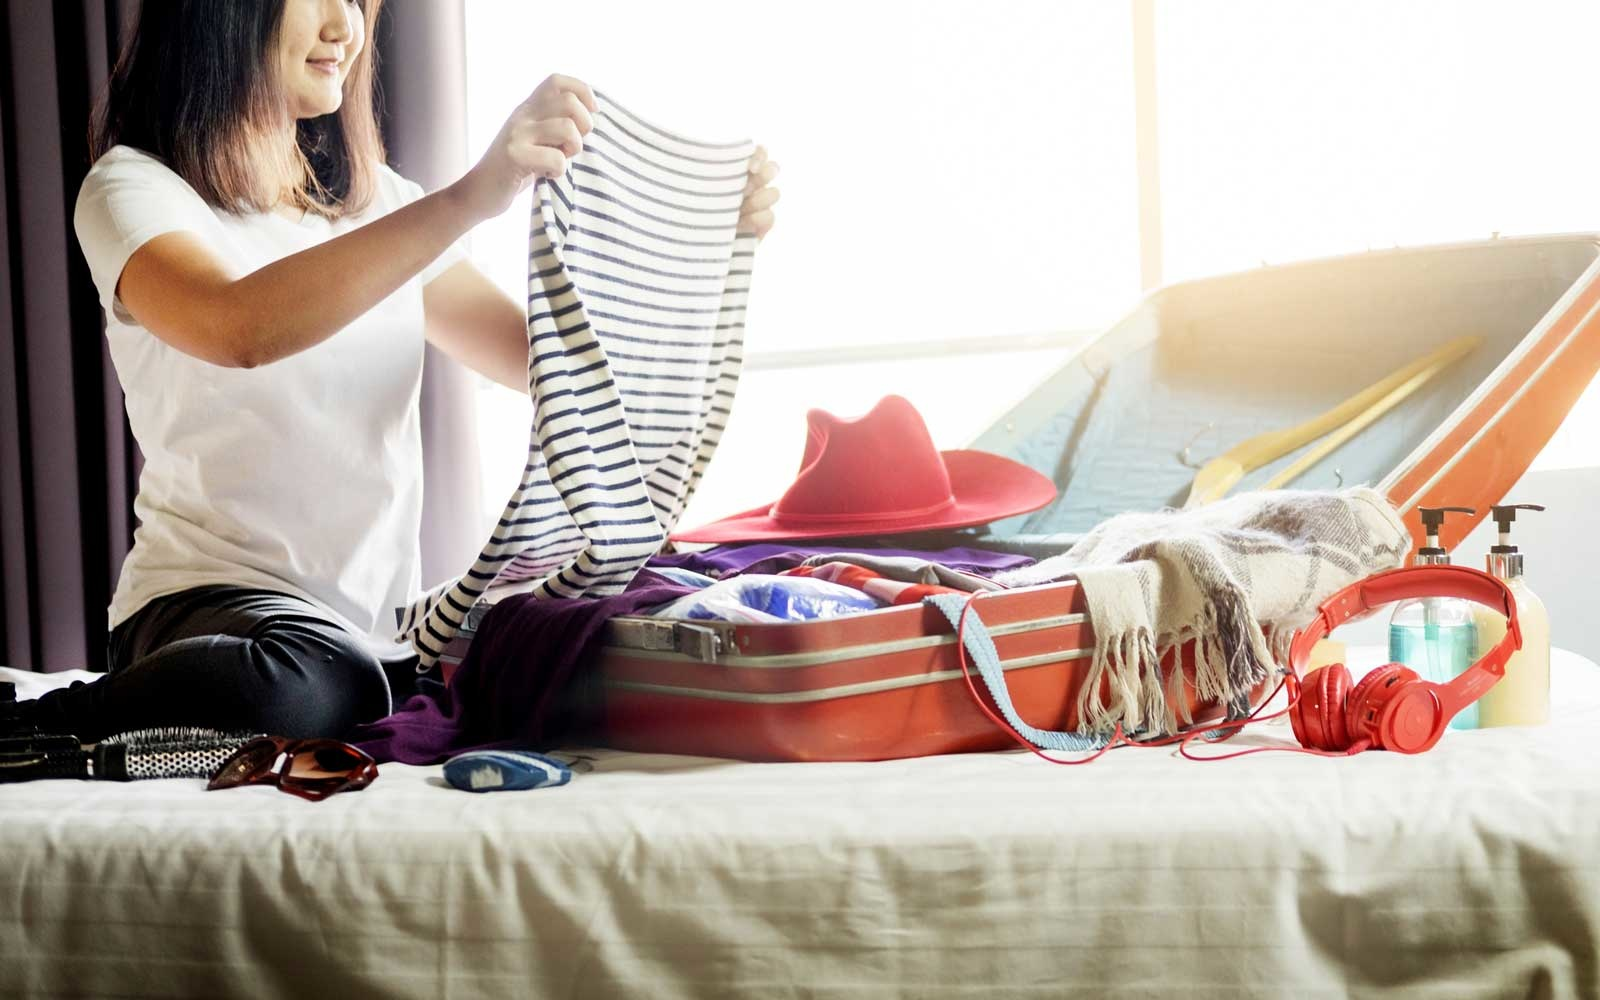 How to Pack Your Clothes to Keep Them Wrinkle Free